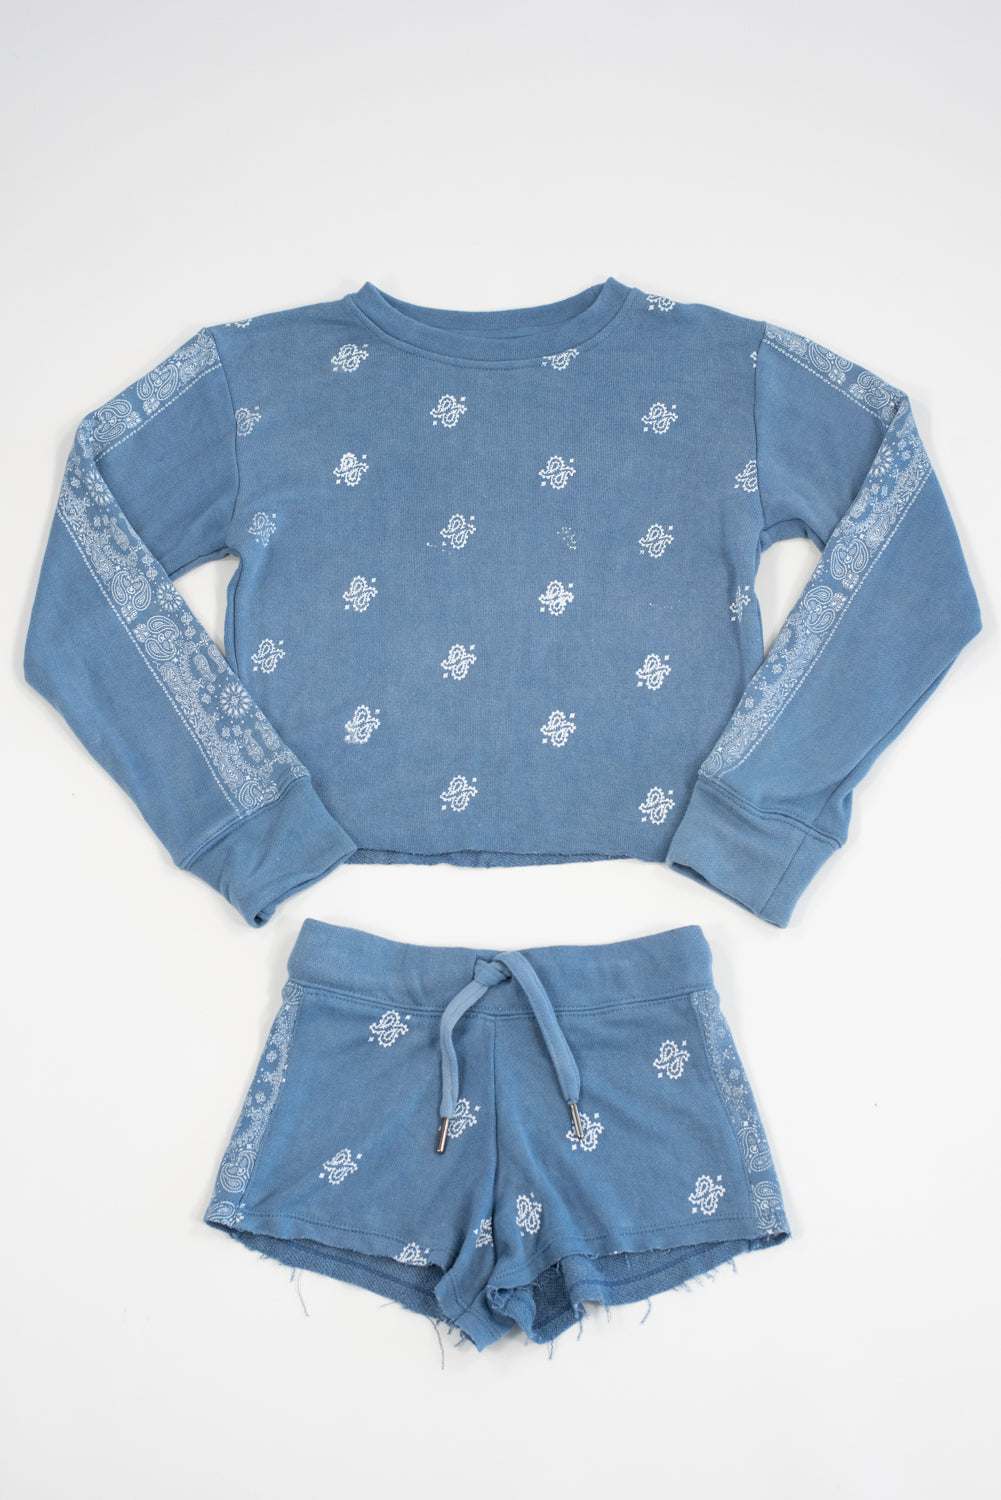 *Blue Vintage Washed Bandana Shorts*